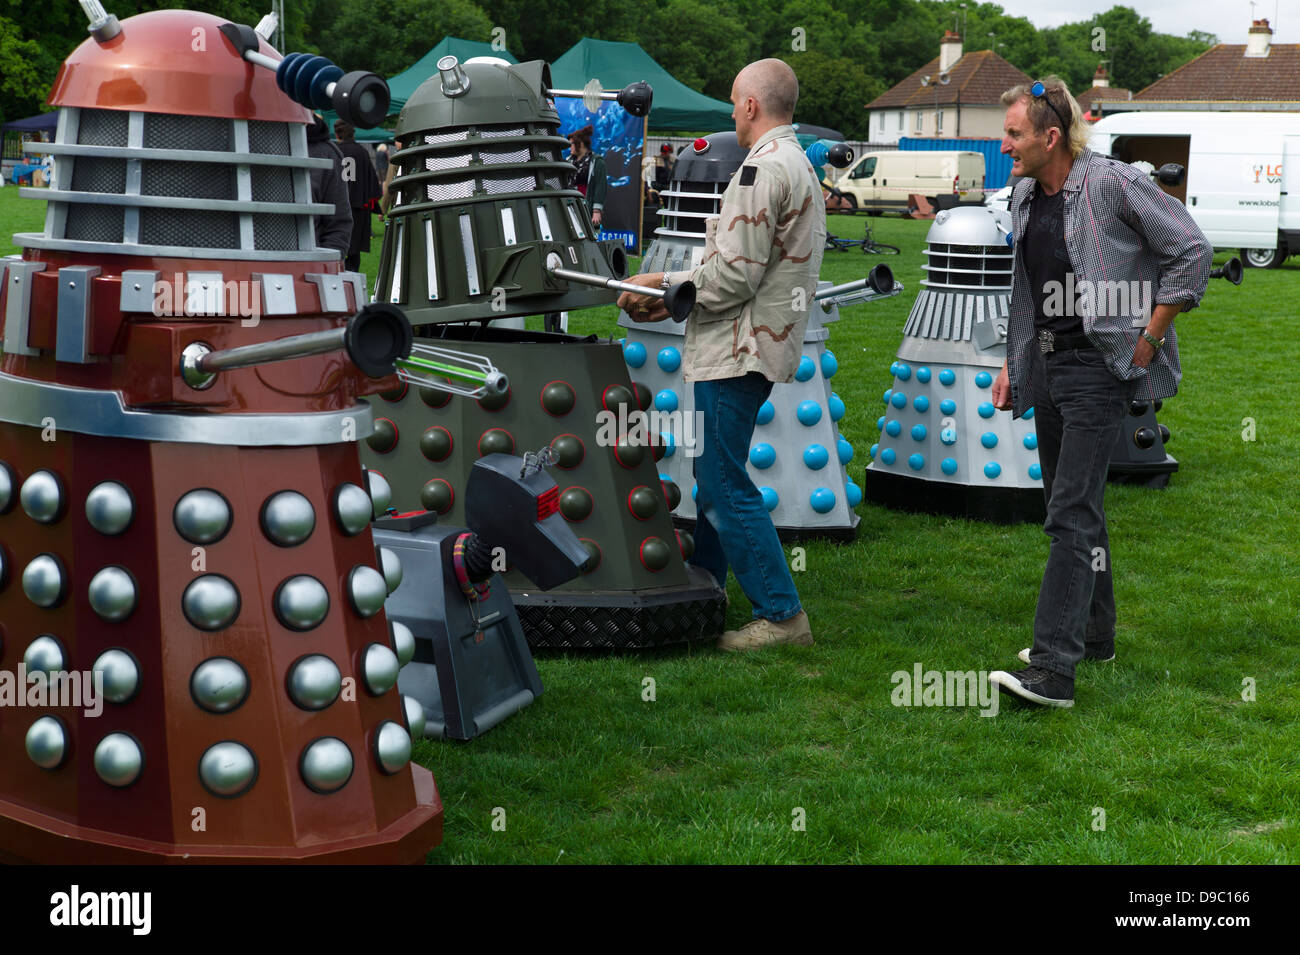 A row of Daleks on display  one being repaired at the Herne Bay Si-Fi by the sea event - Stock Image